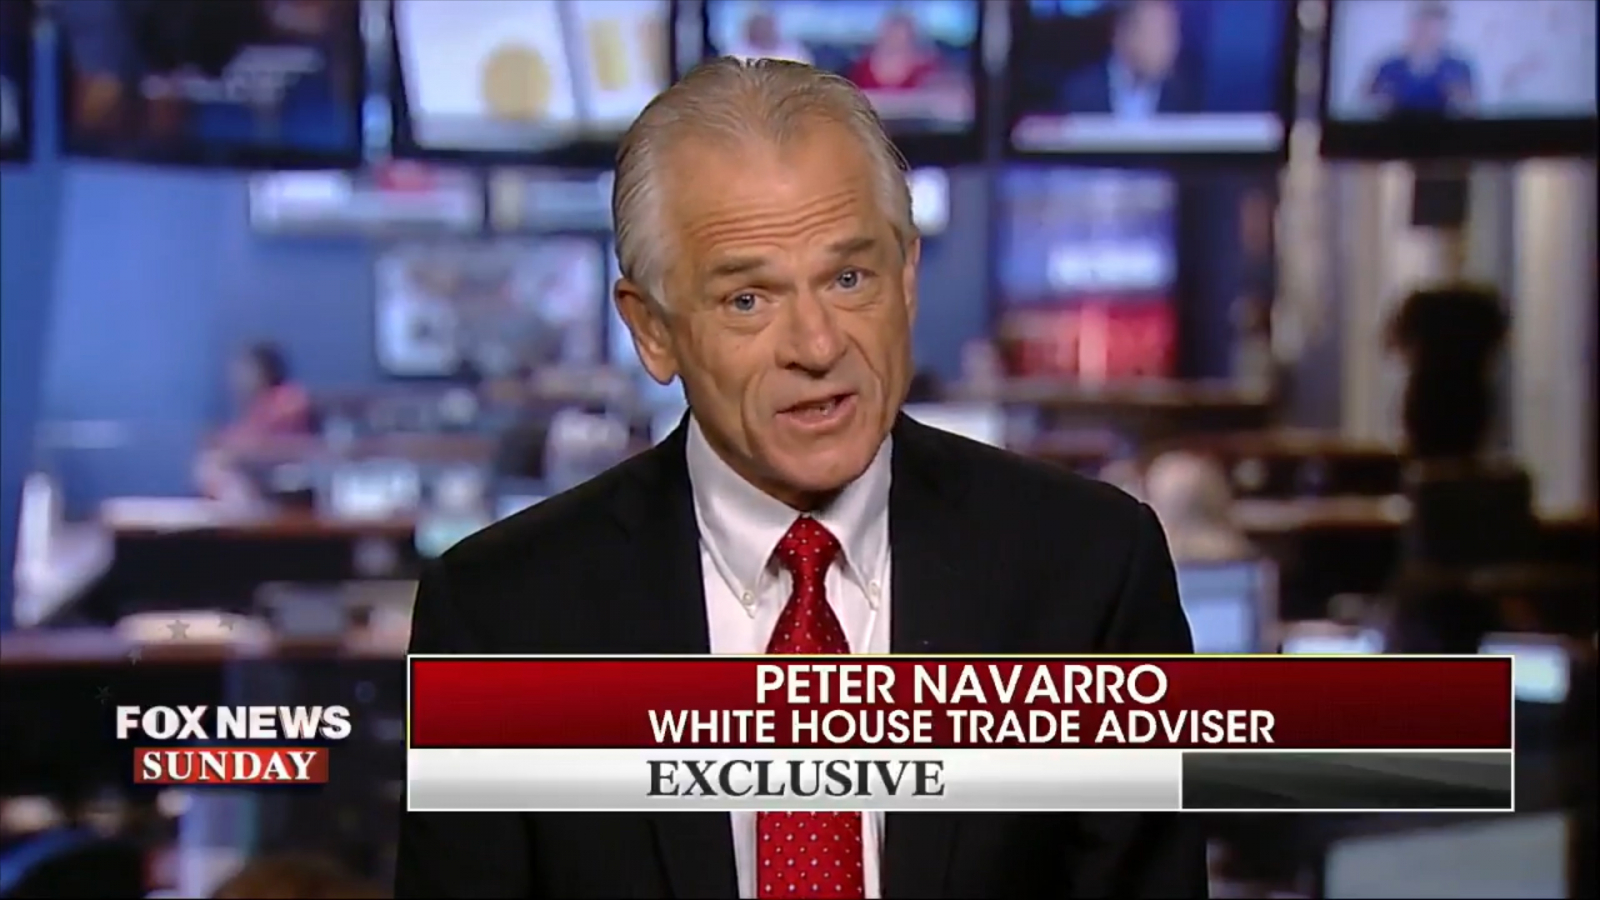 white-house-trade-adviser-peter-navarro-says-there-is-a-special-place-in-hell-for-justin-trudeau